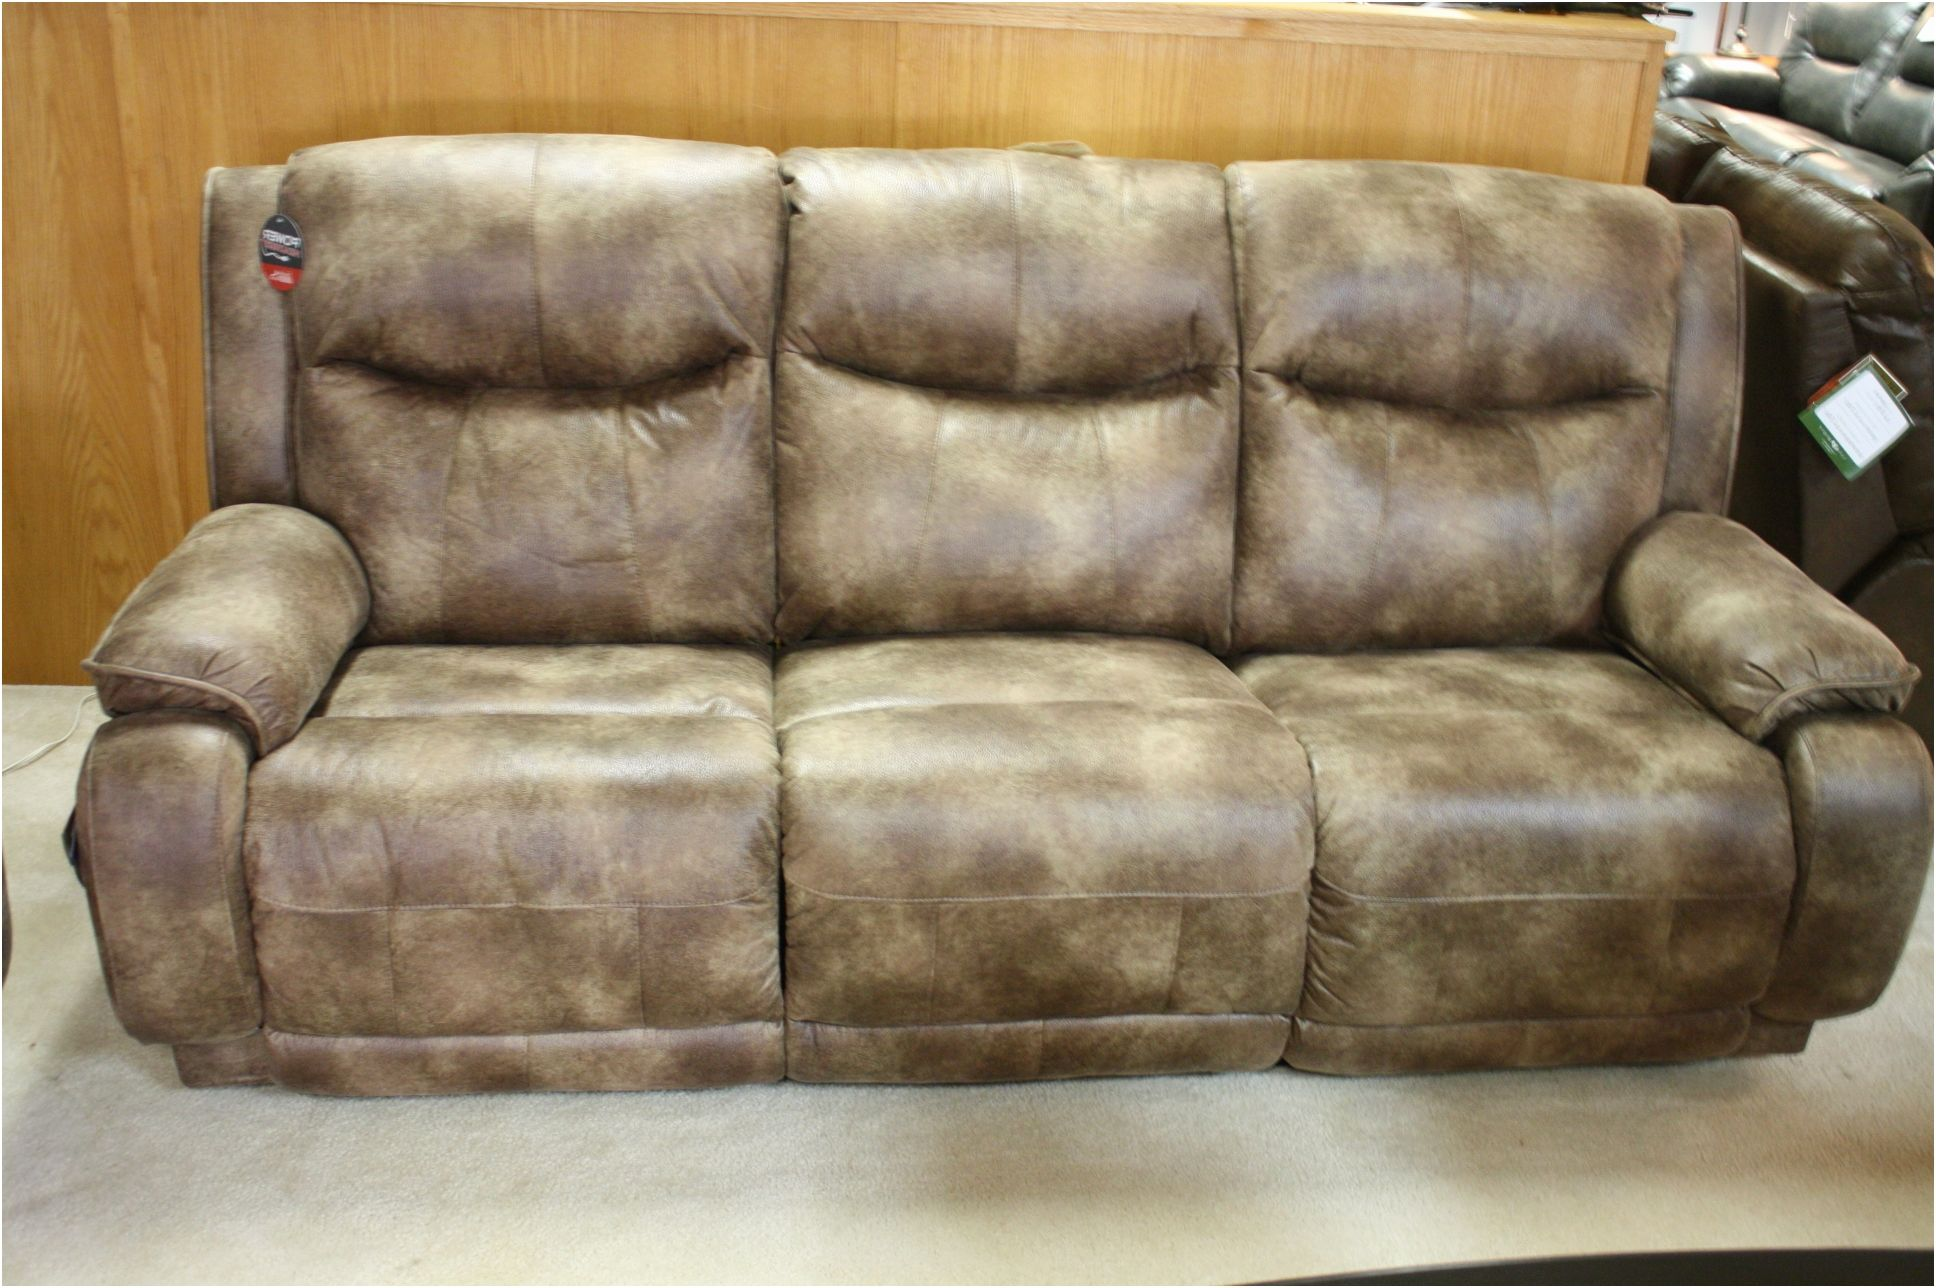 new southern motion reclining sofa gallery-Amazing southern Motion Reclining sofa Pattern